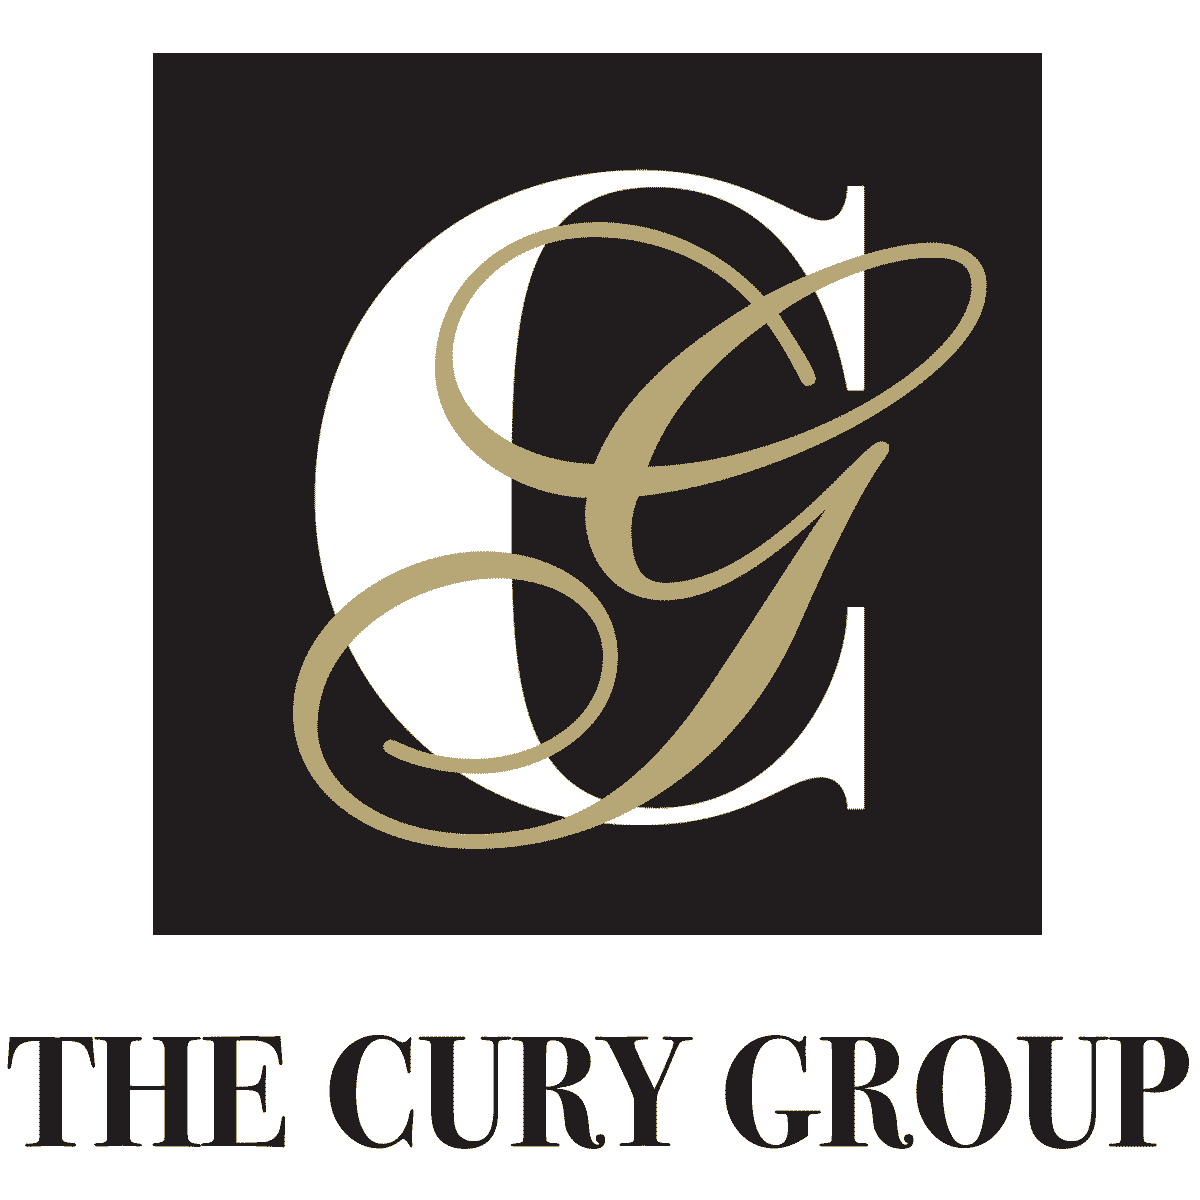 the cury group